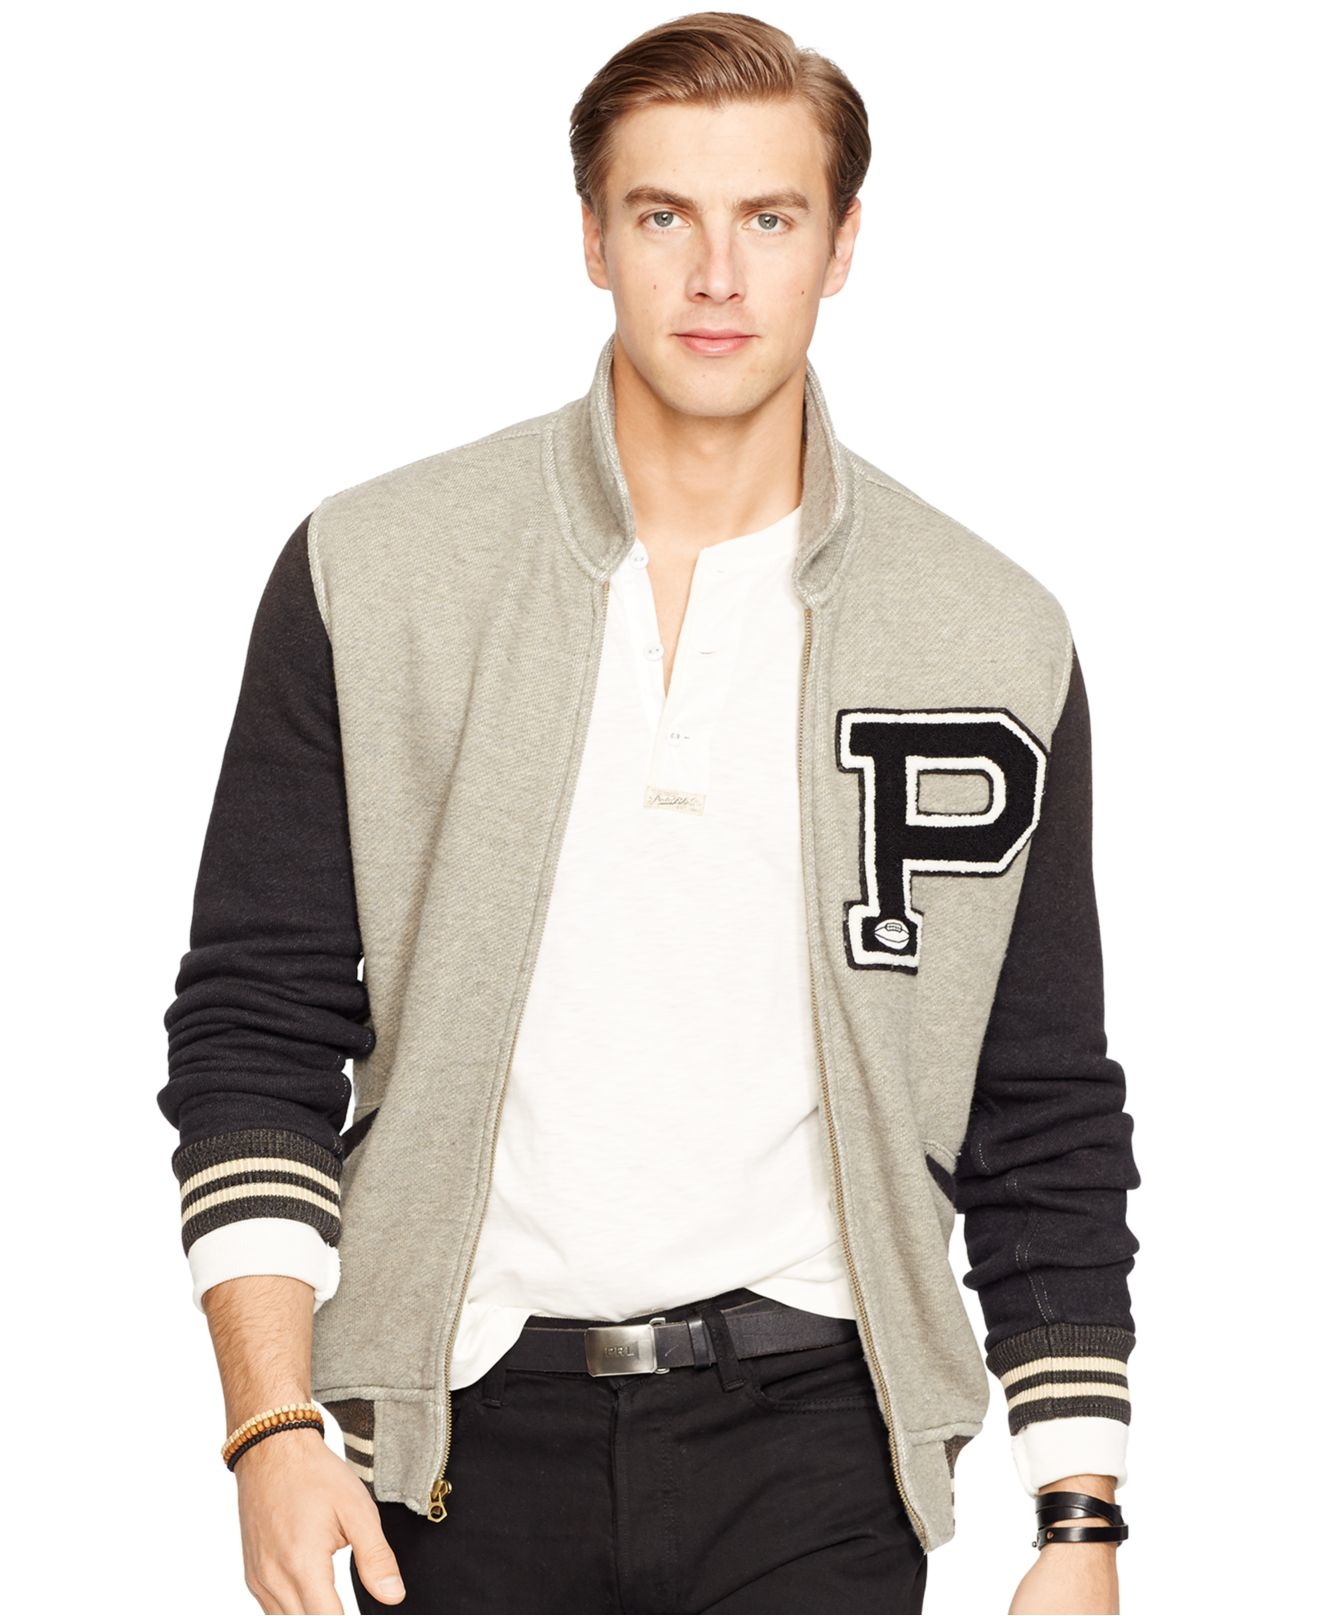 Mens jacket in macys